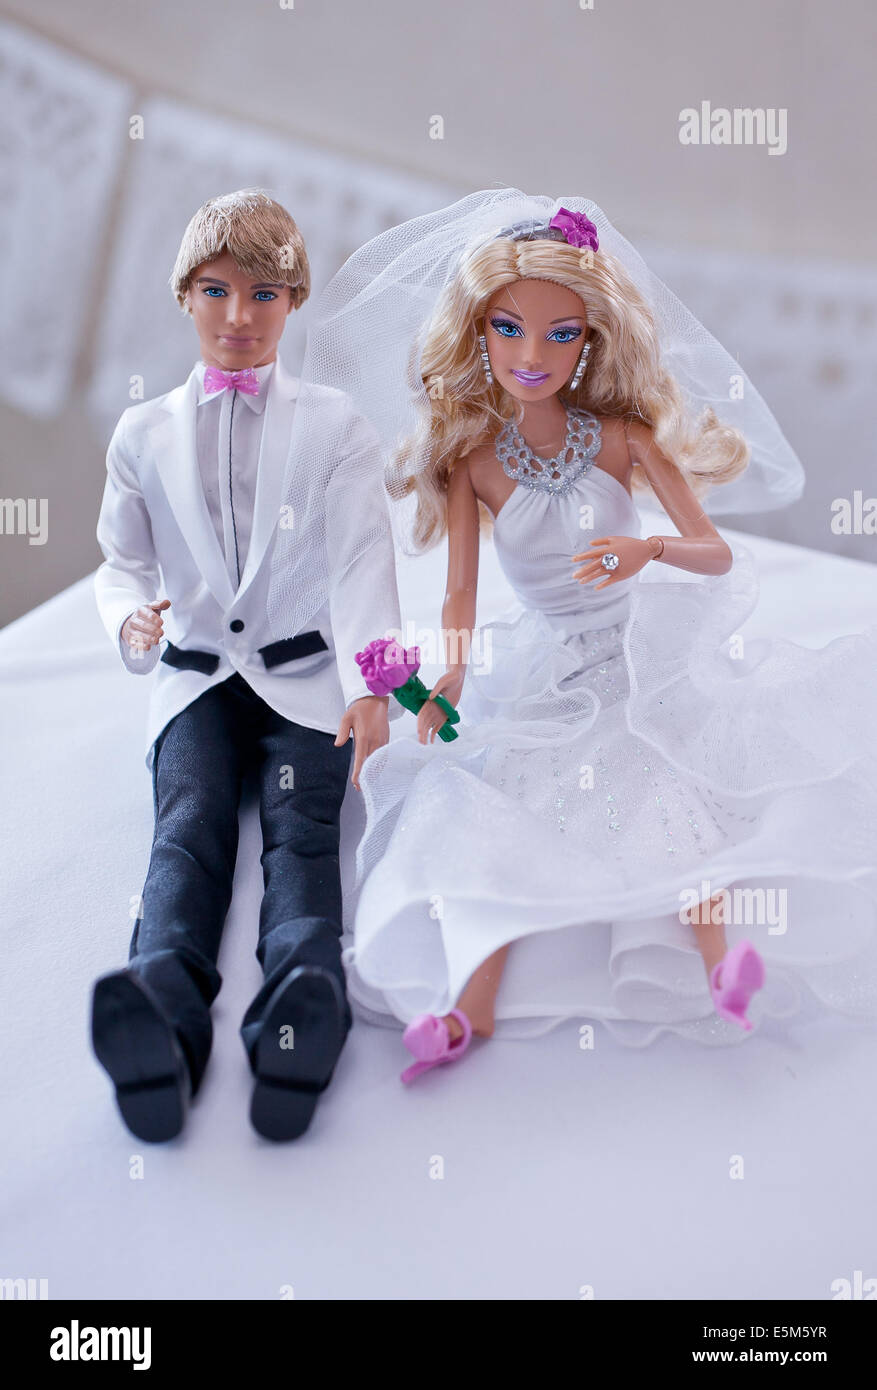 barbie wedding cake topper ken amp and groom cake toppers on a wedding 11071